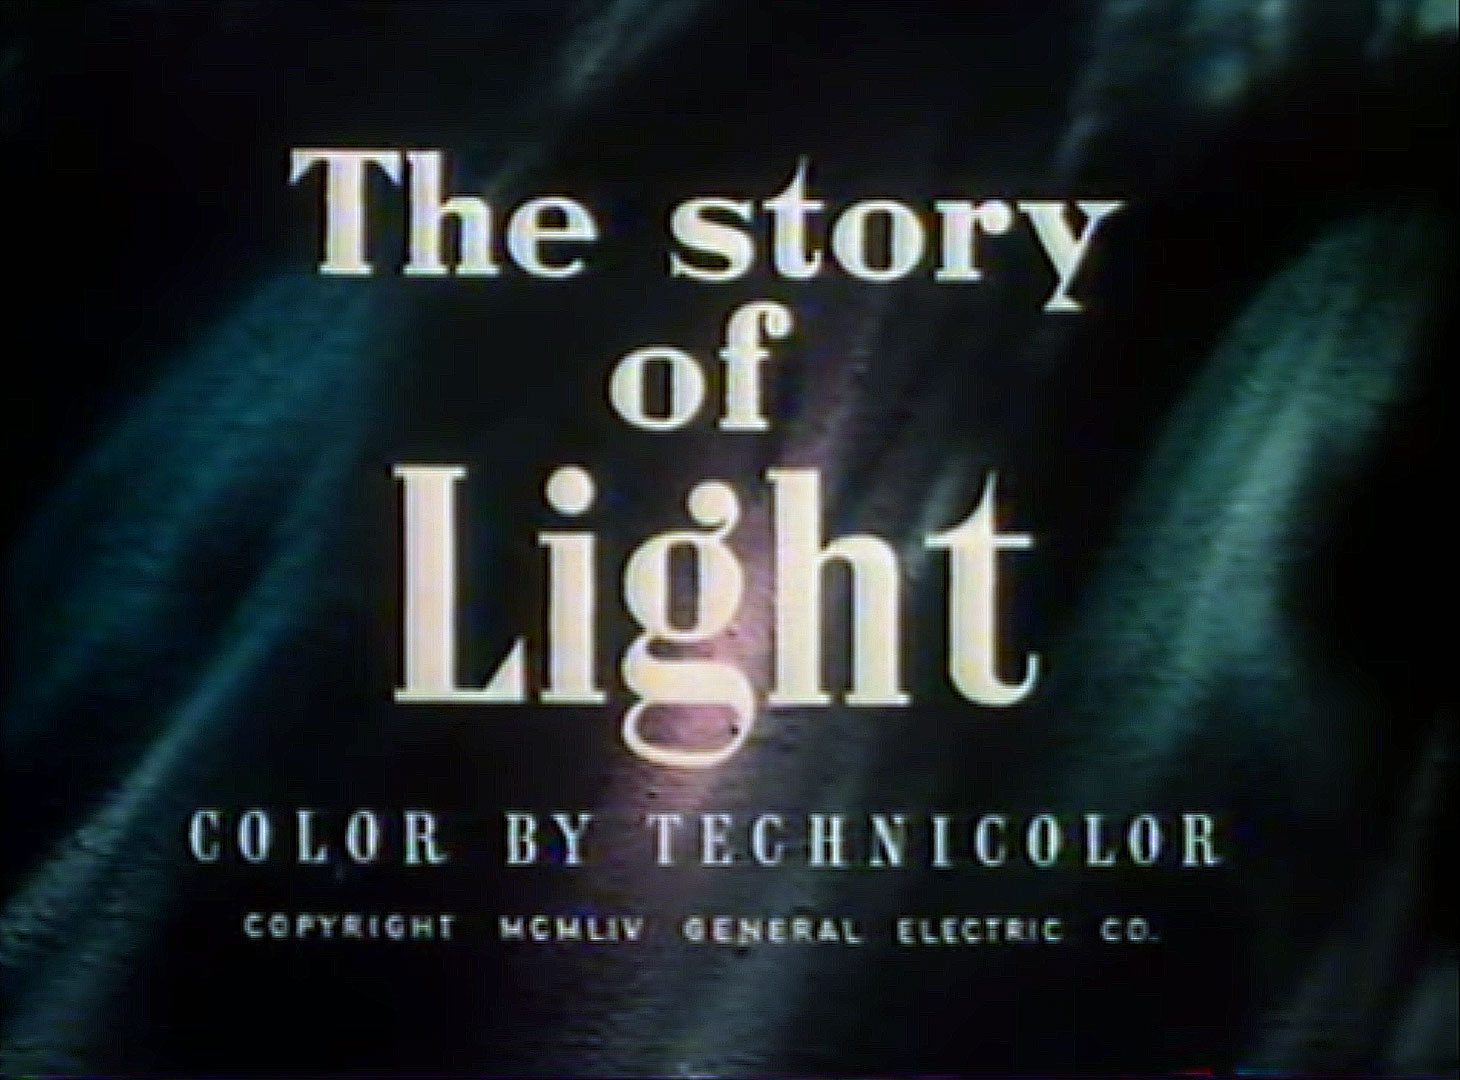 The Story of Light (1954)